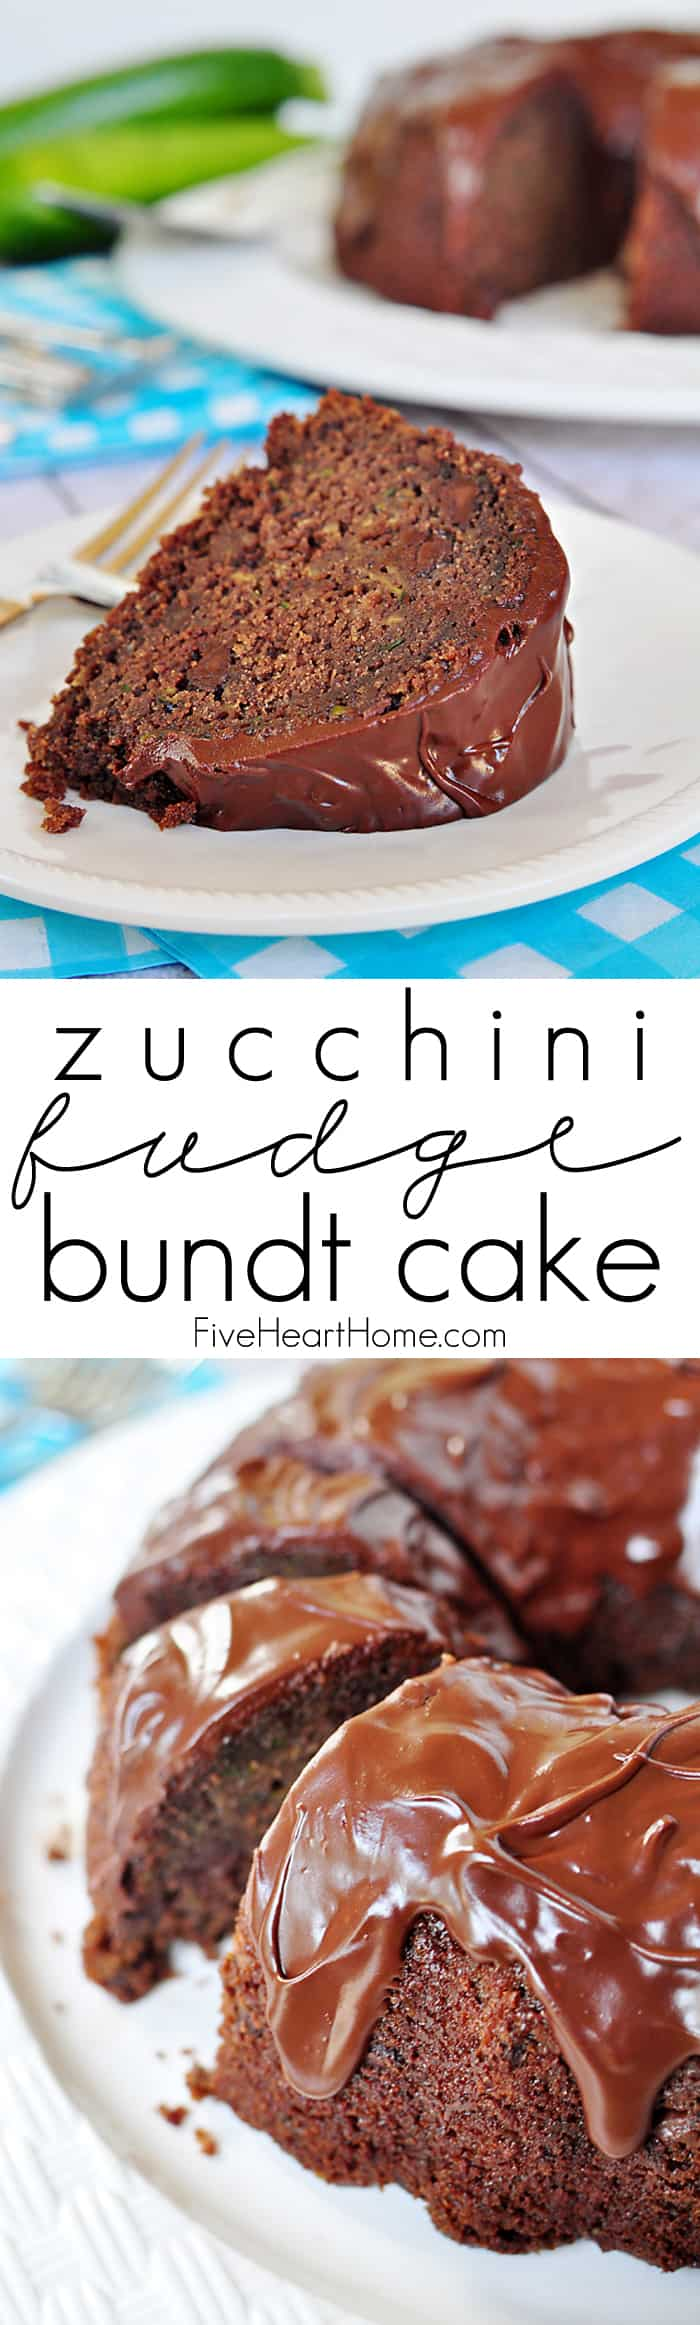 Zucchini Fudge Bundt Cake with Chocolate Glaze {OR} Chocolate Zucchini Bread ~ so moist and decadent, nobody will guess that it's hiding a pound of zucchini and whole wheat flour! | FiveHeartHome.com